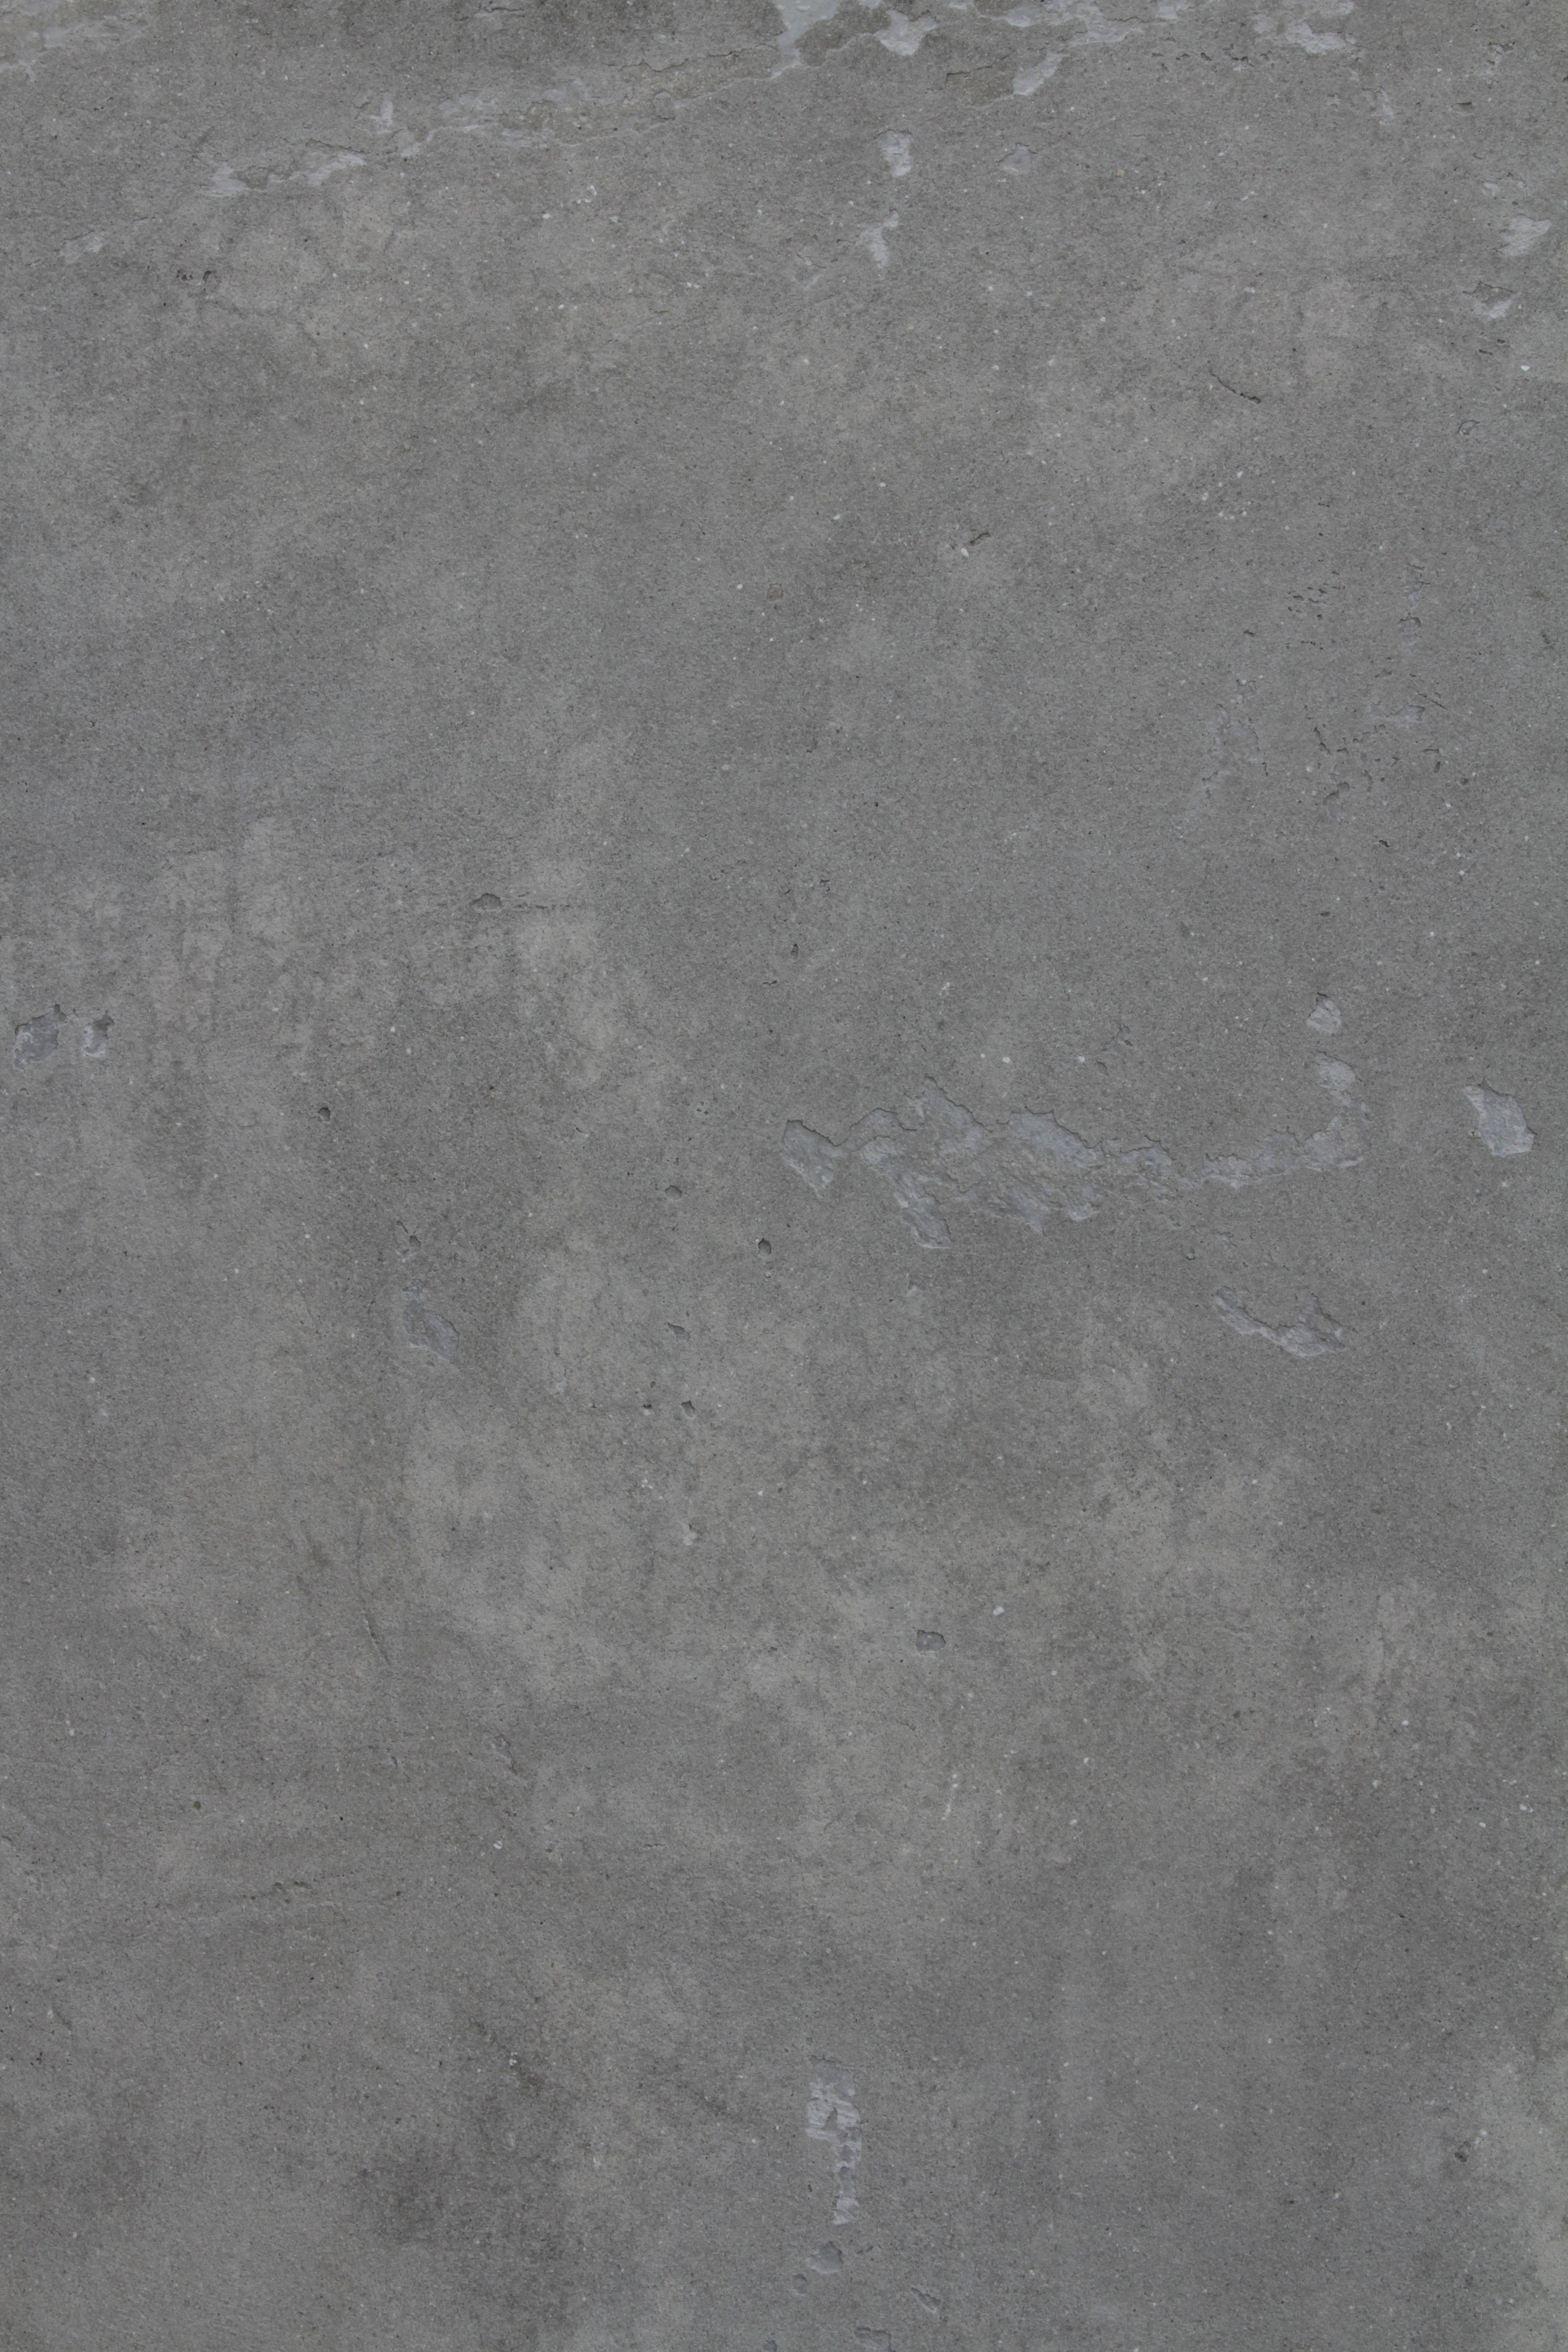 Free Photo Gray Concrete Texture Abstract Material